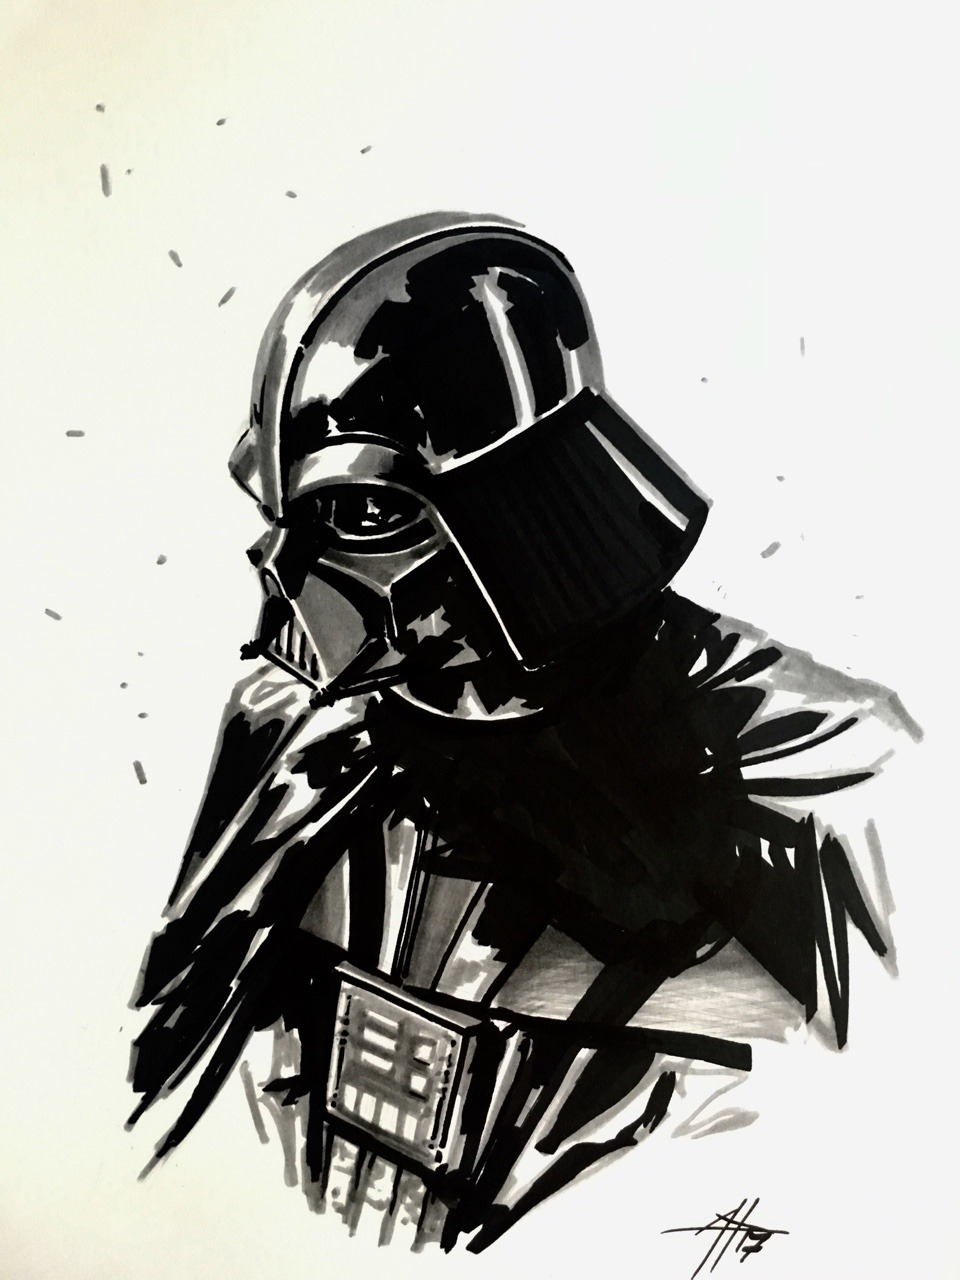 960x1280 Gabriele Dell'Otto Vader Convention Markers On Paper